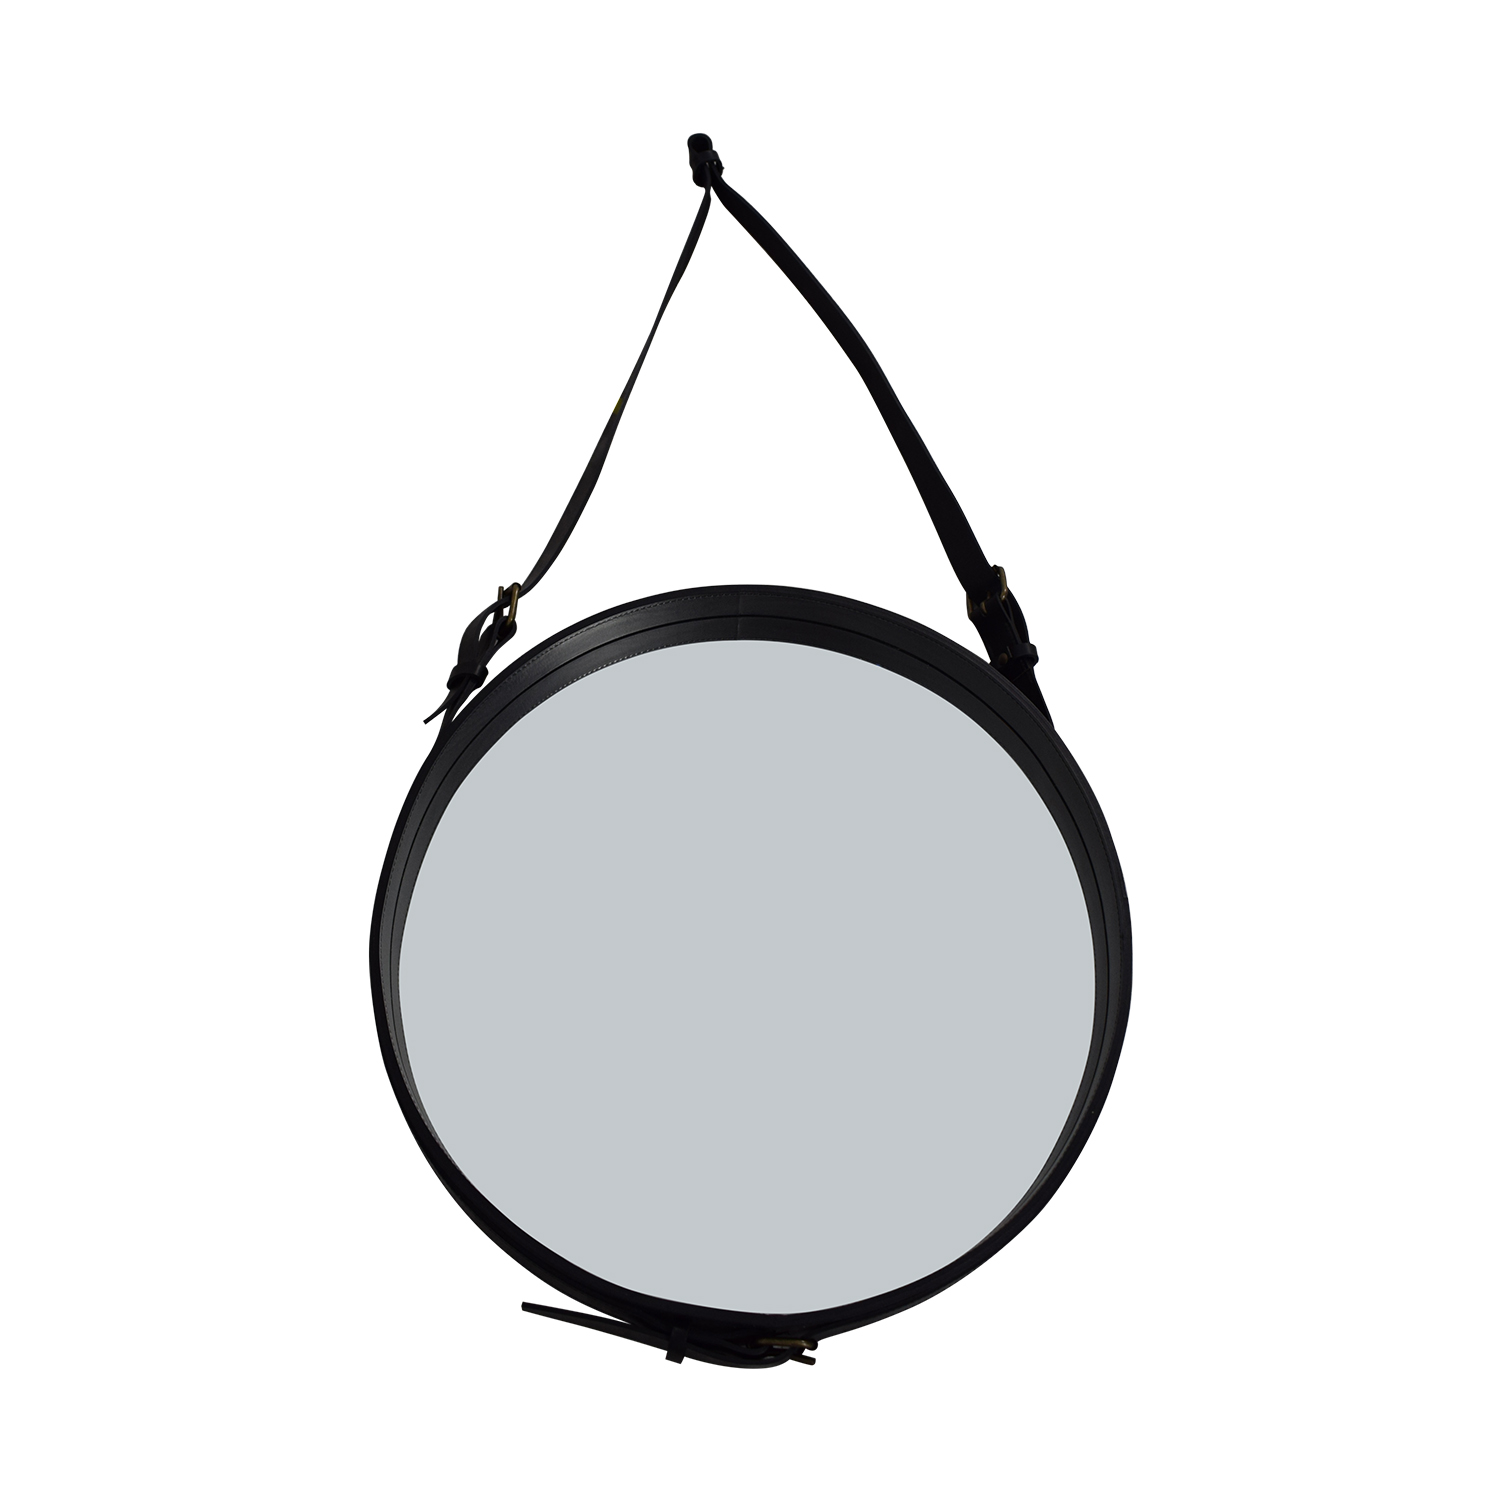 Circular Hanging Mirror with Leather Strap Frame sale